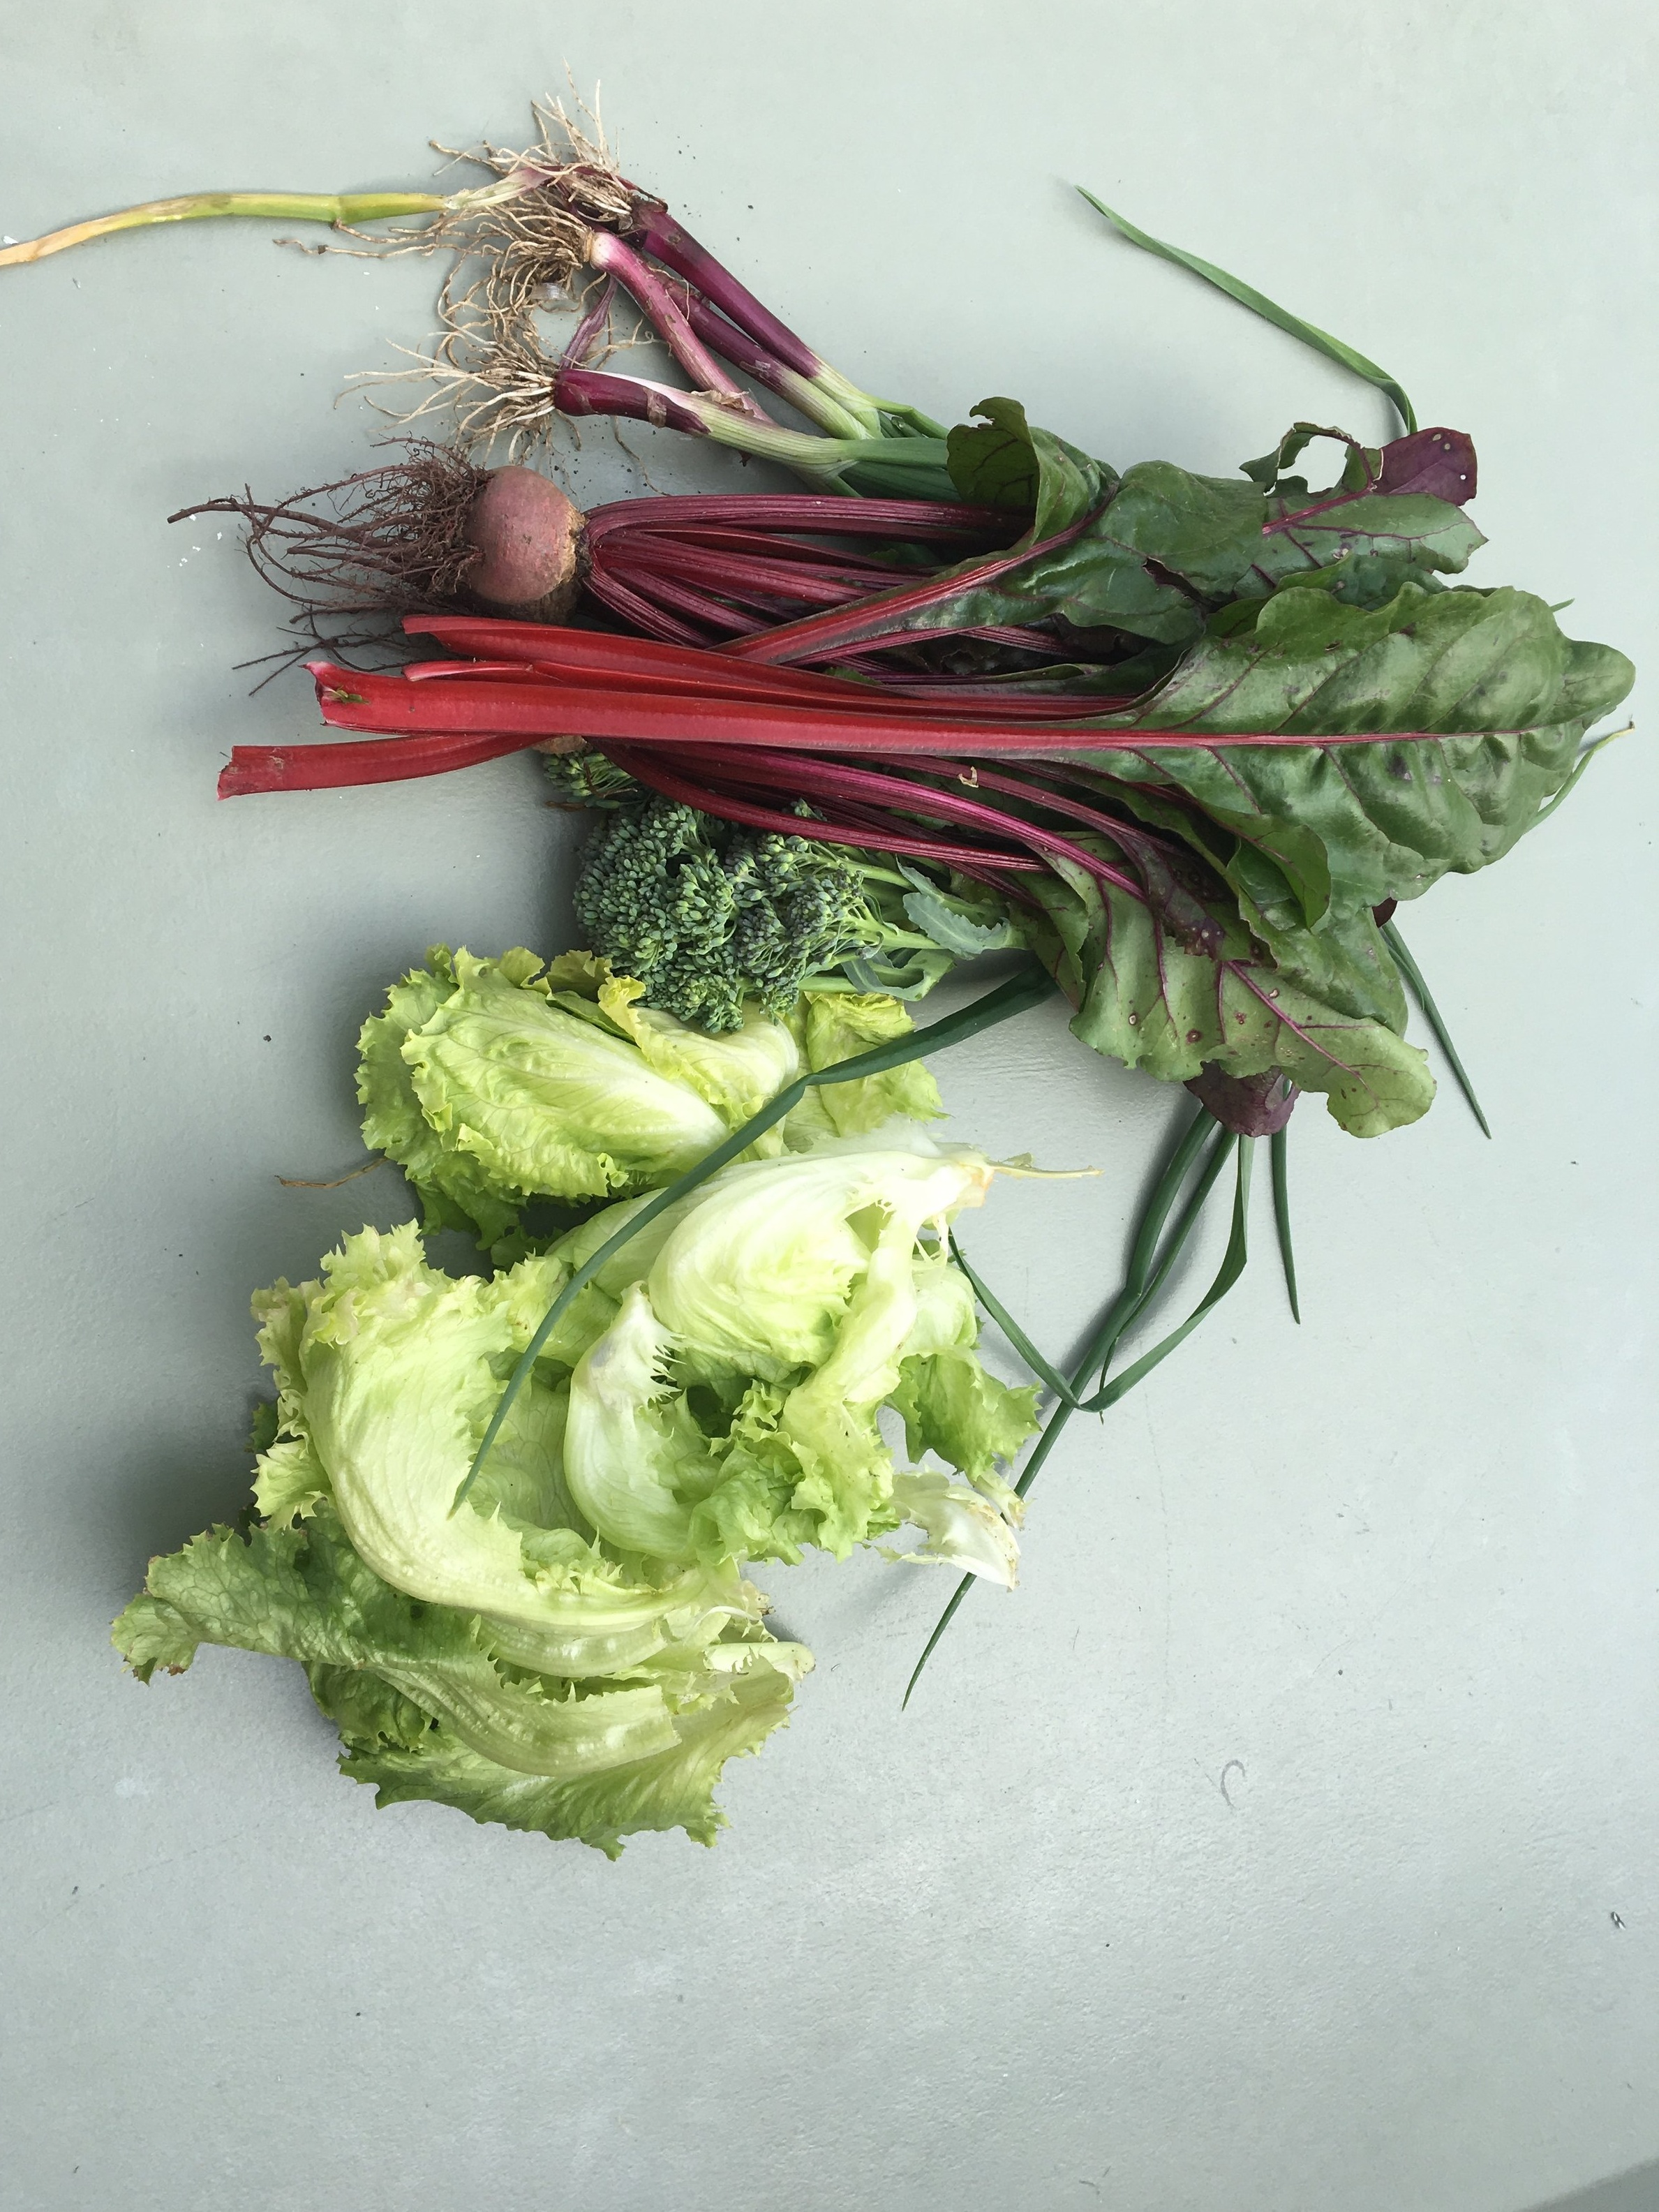 Photo: Meals picked straight from the garden